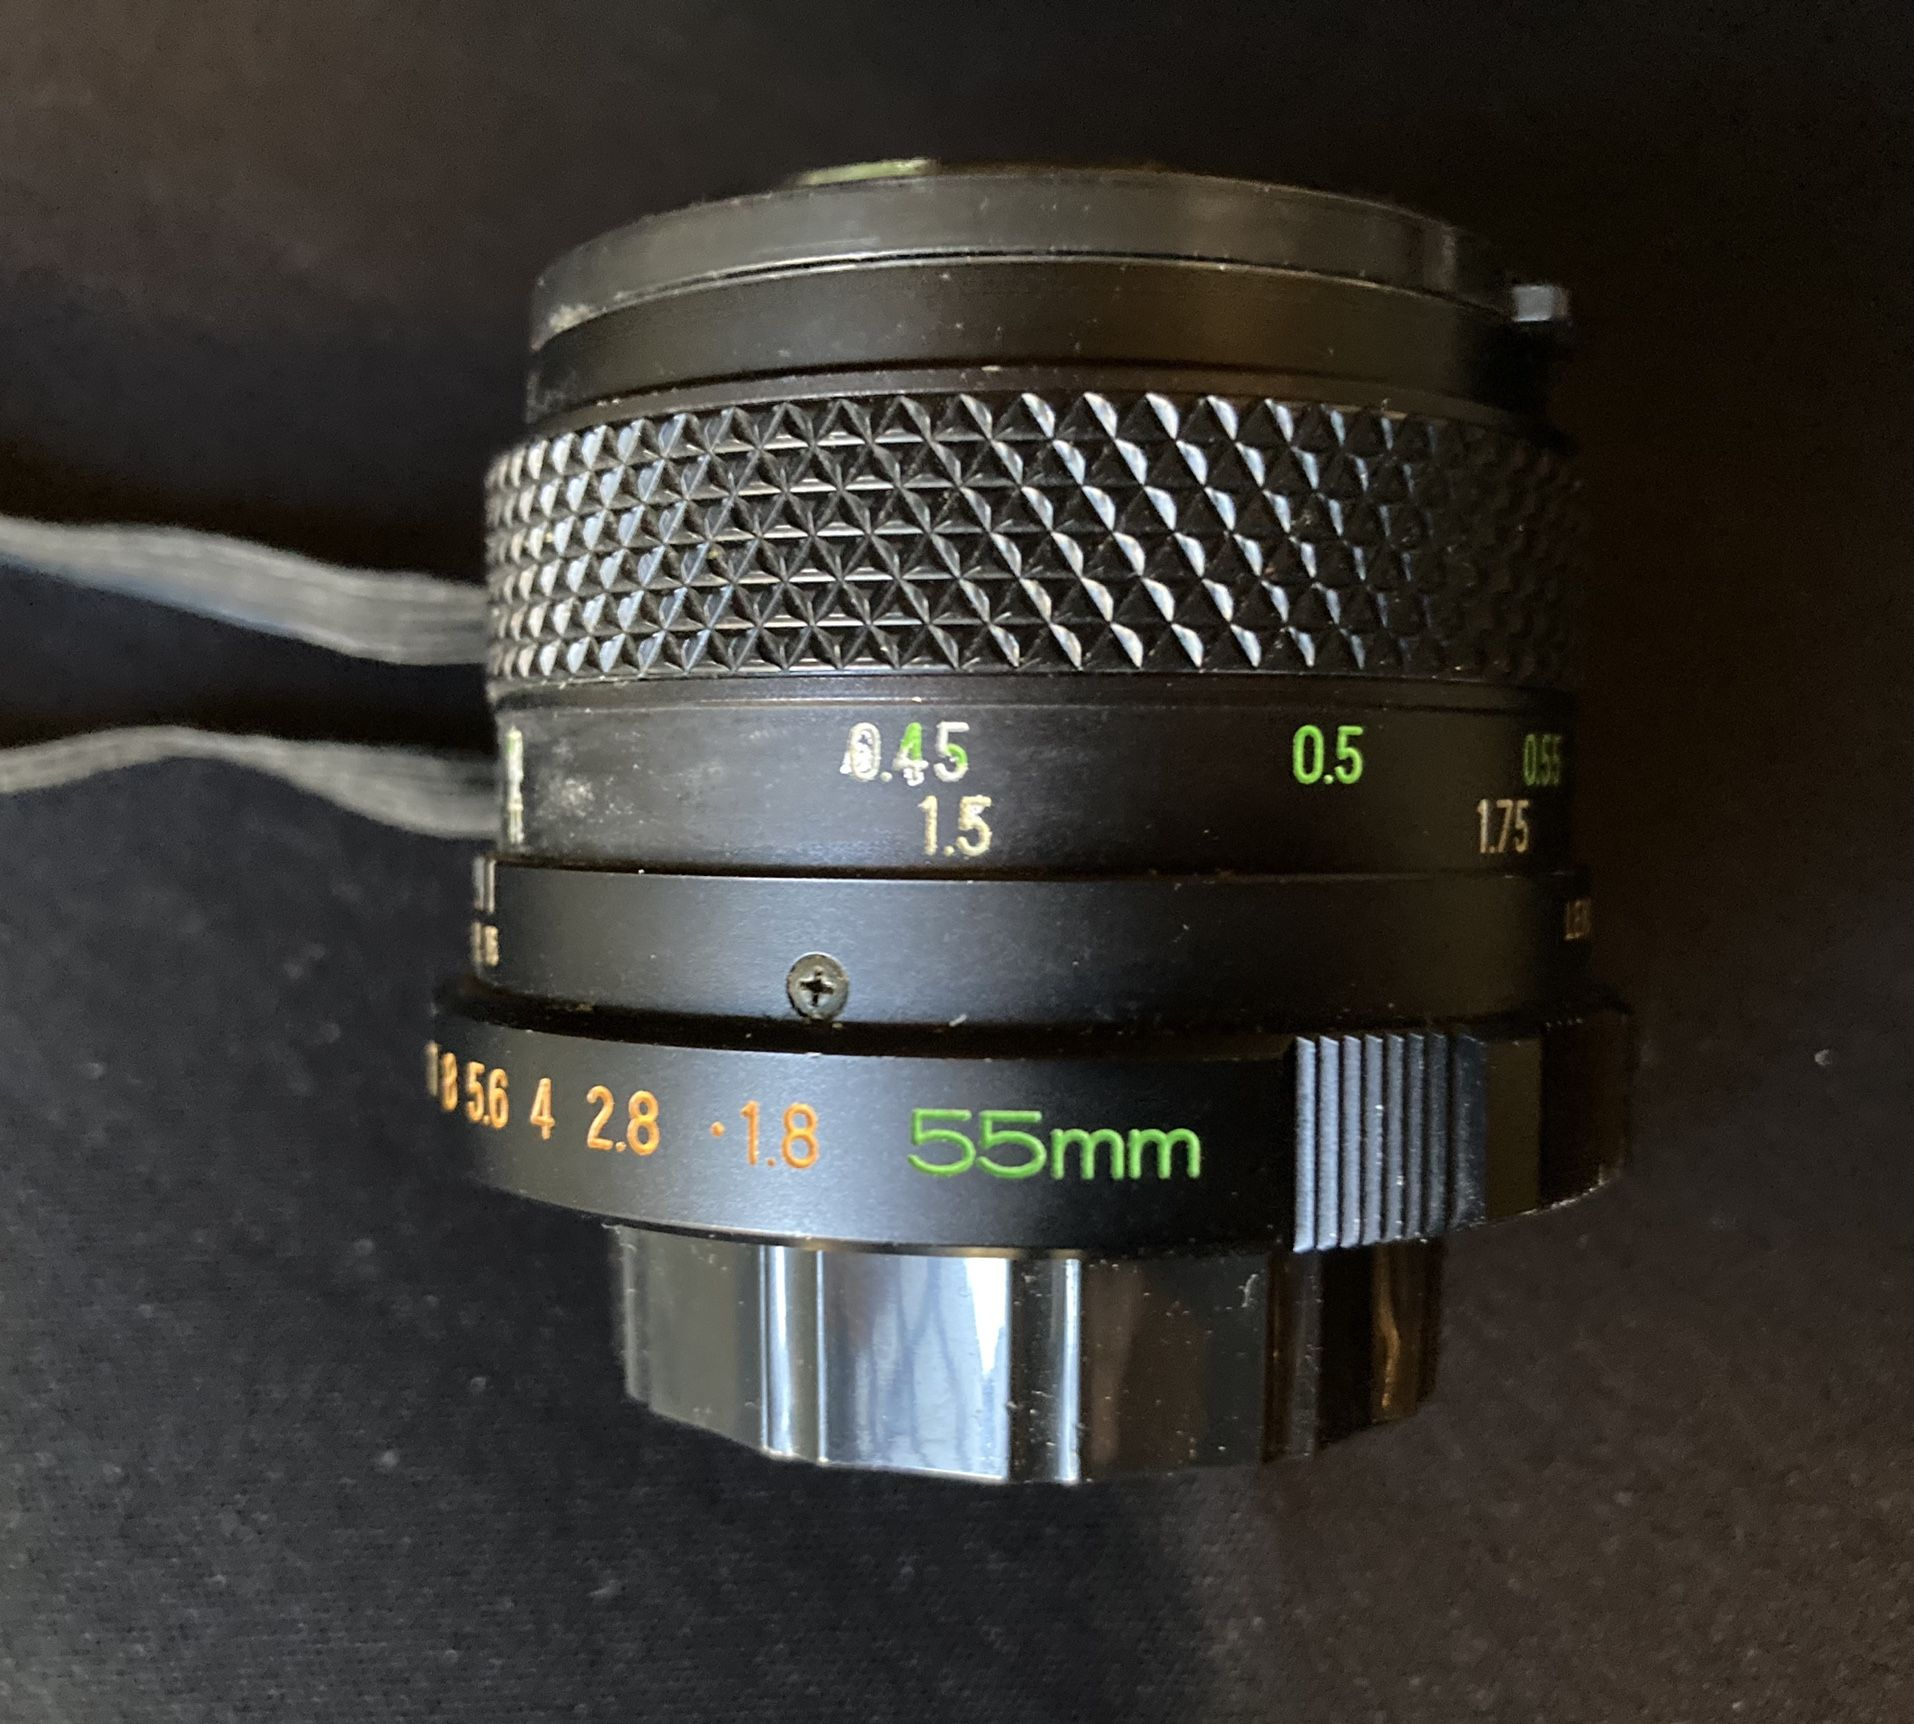 Mamiya MSX 1000 35mm SLR Film Camera with 55mm and 75~200mm Lens